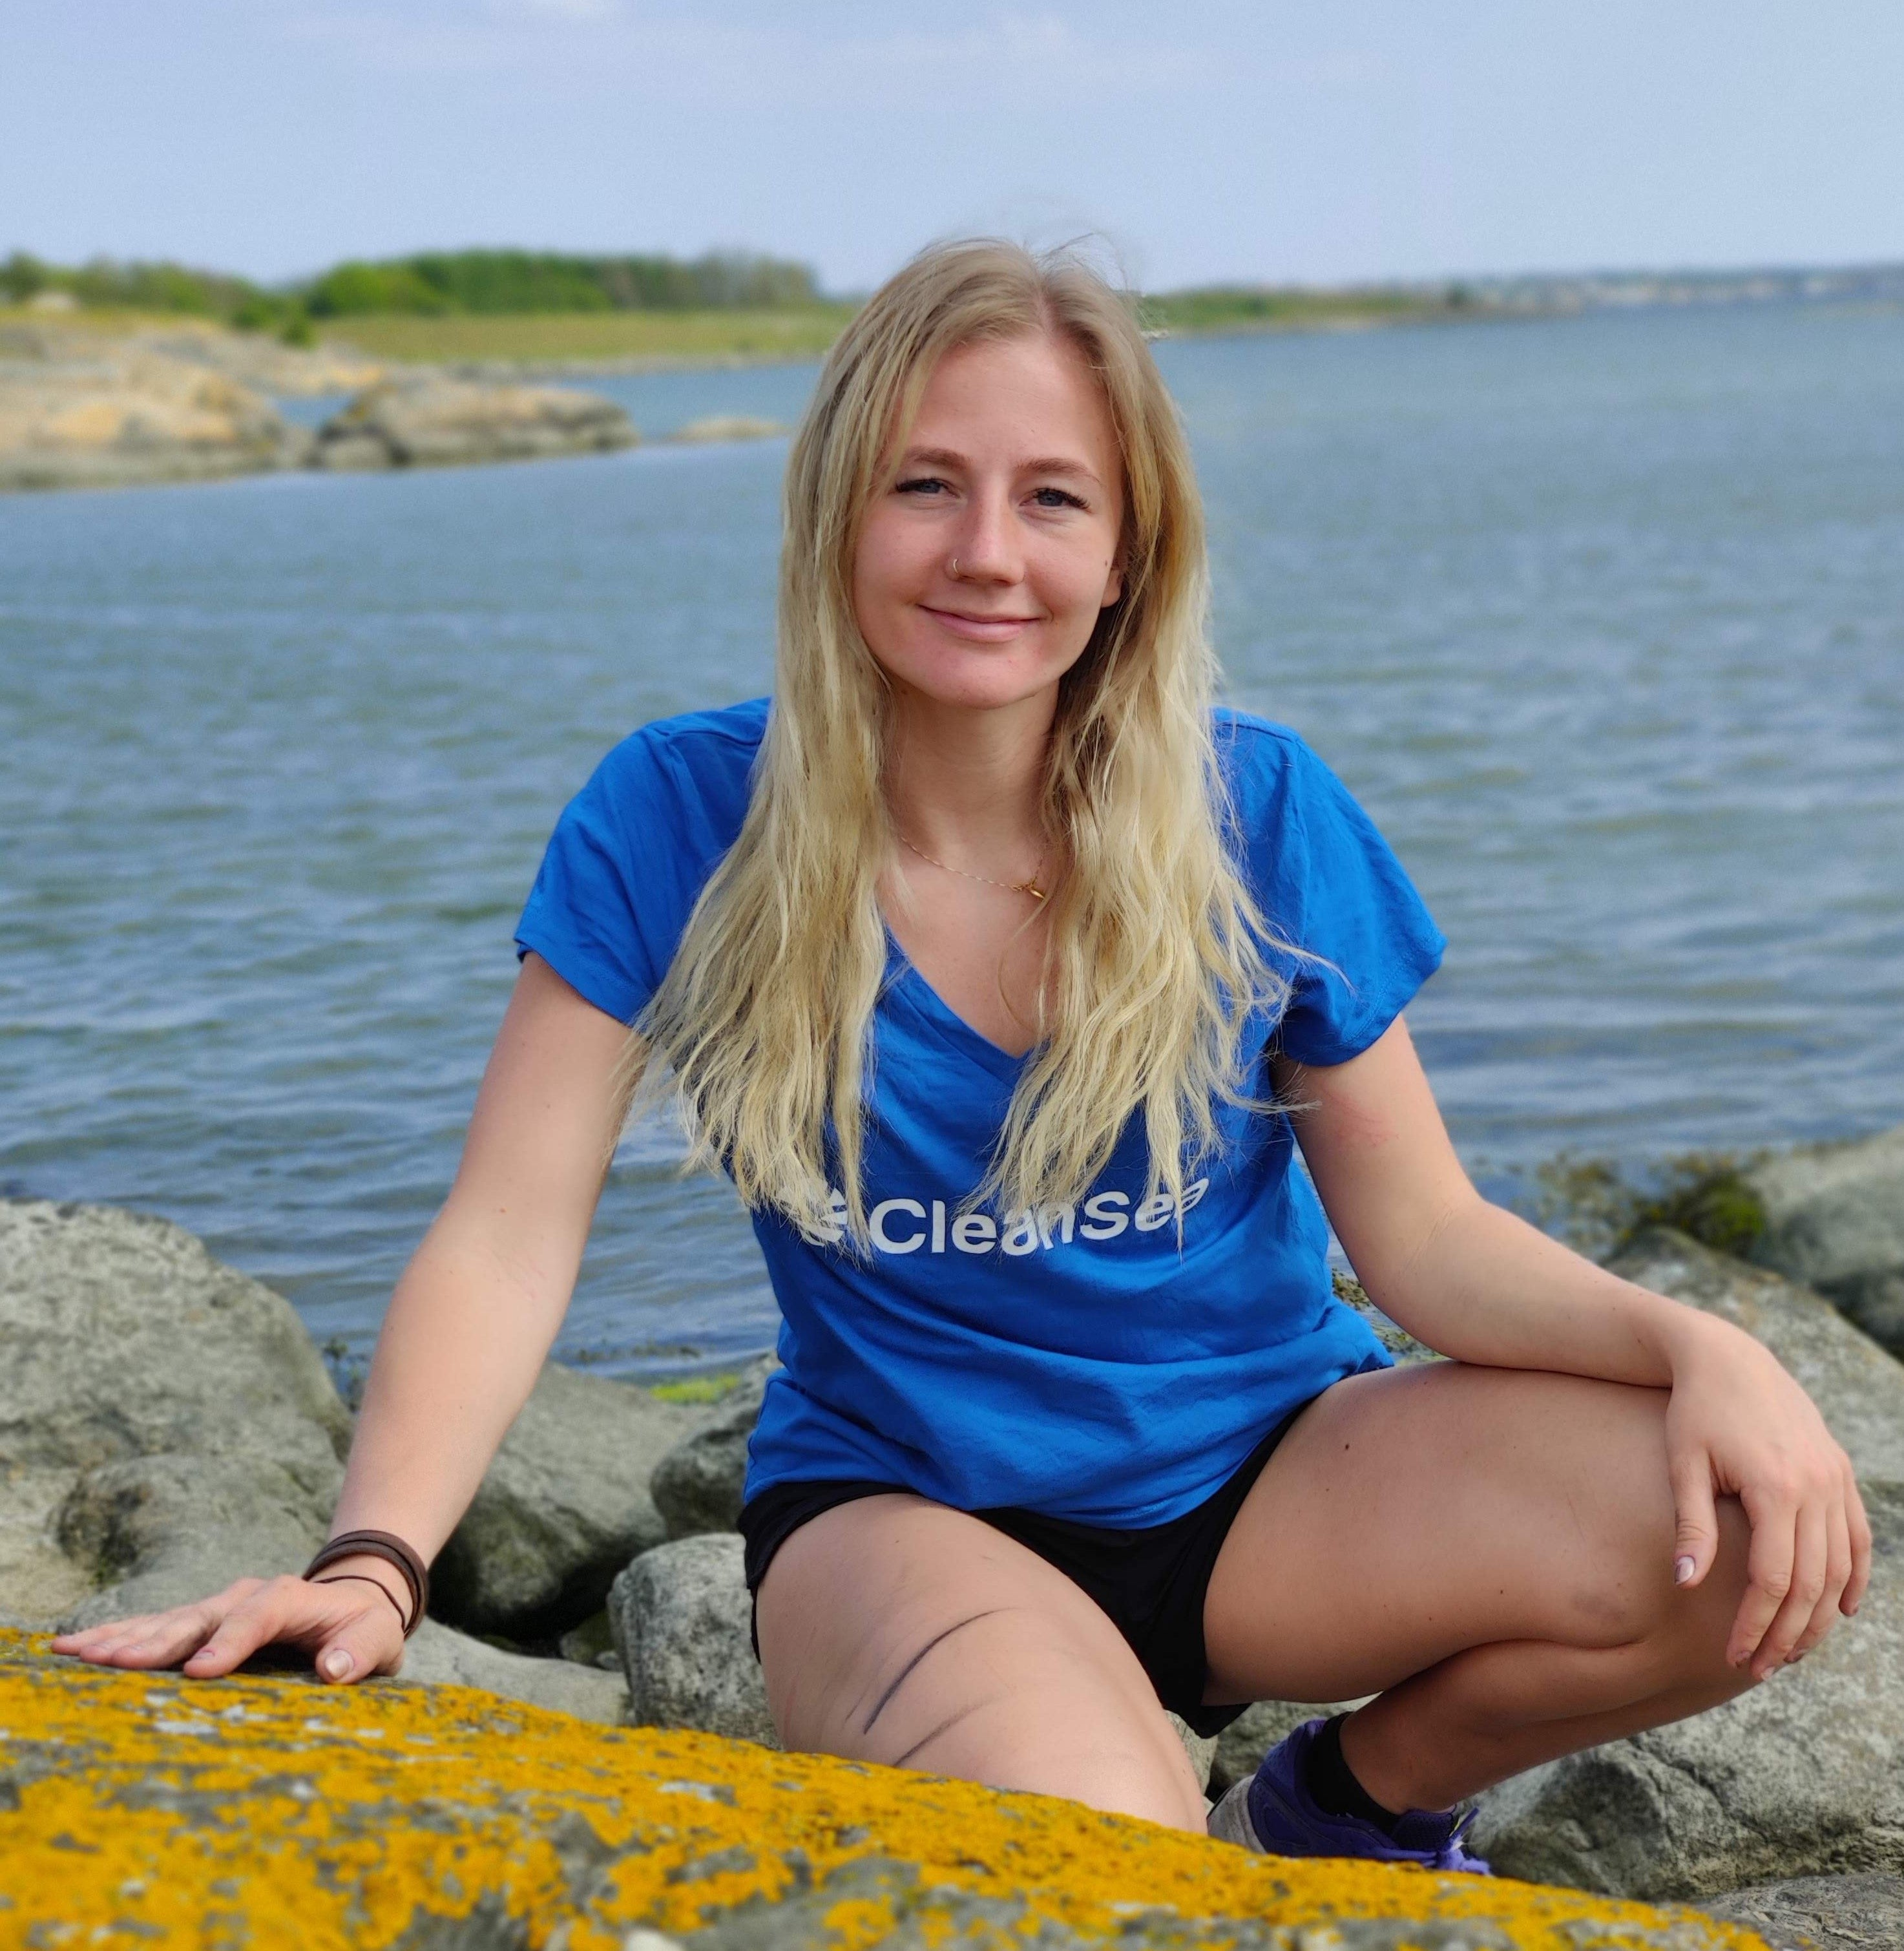 Albina Lampa, part of the CleanSea team